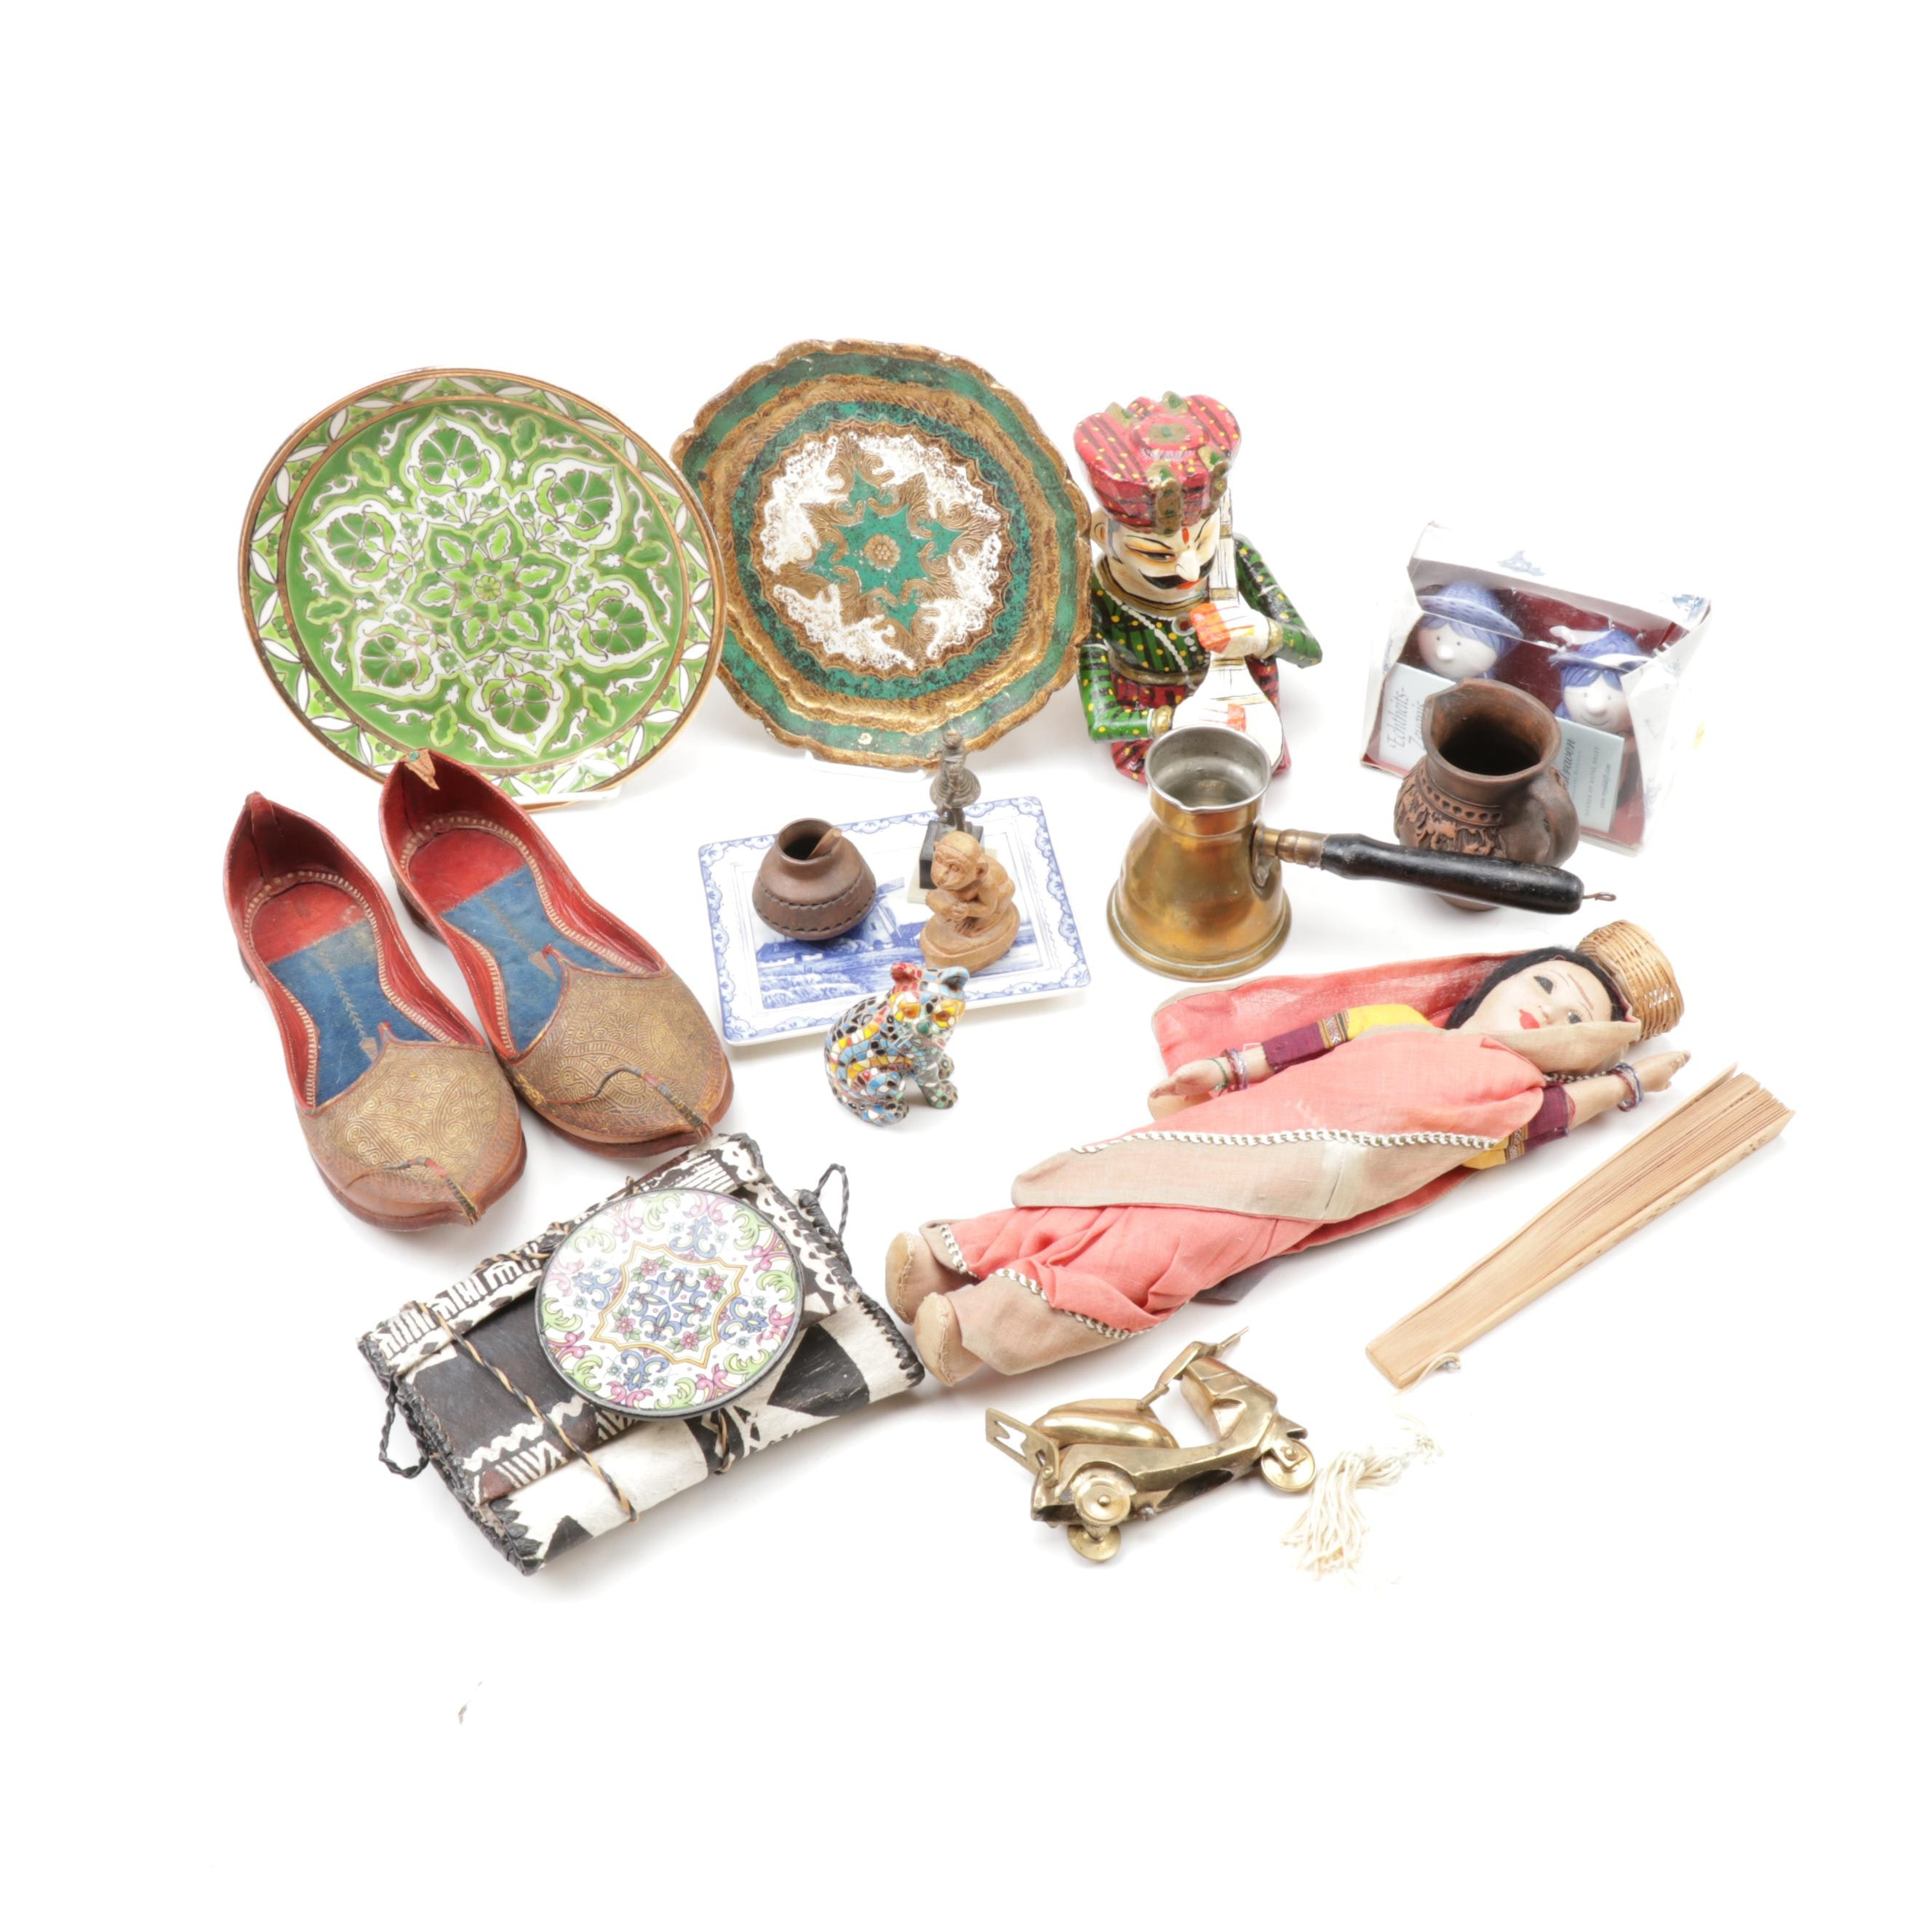 Multi-Cultural Collectibles and Souvenirs, Vintage and Contemporary